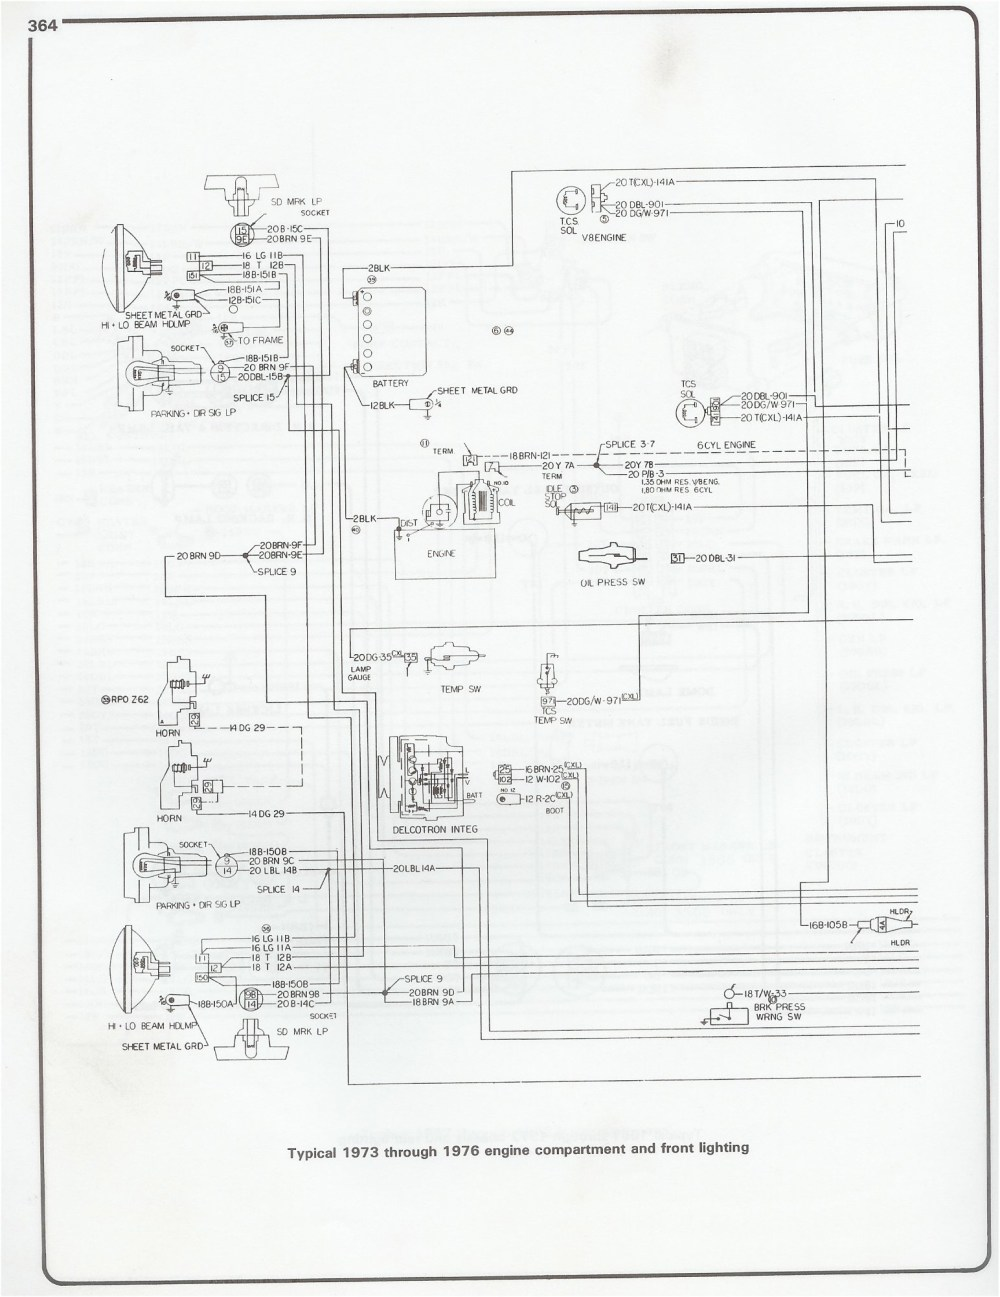 medium resolution of 1 8t fuse diagram wiring library 2004 silverado bose amp wiring apple wiring diagram chevrolet bose wiring diagram